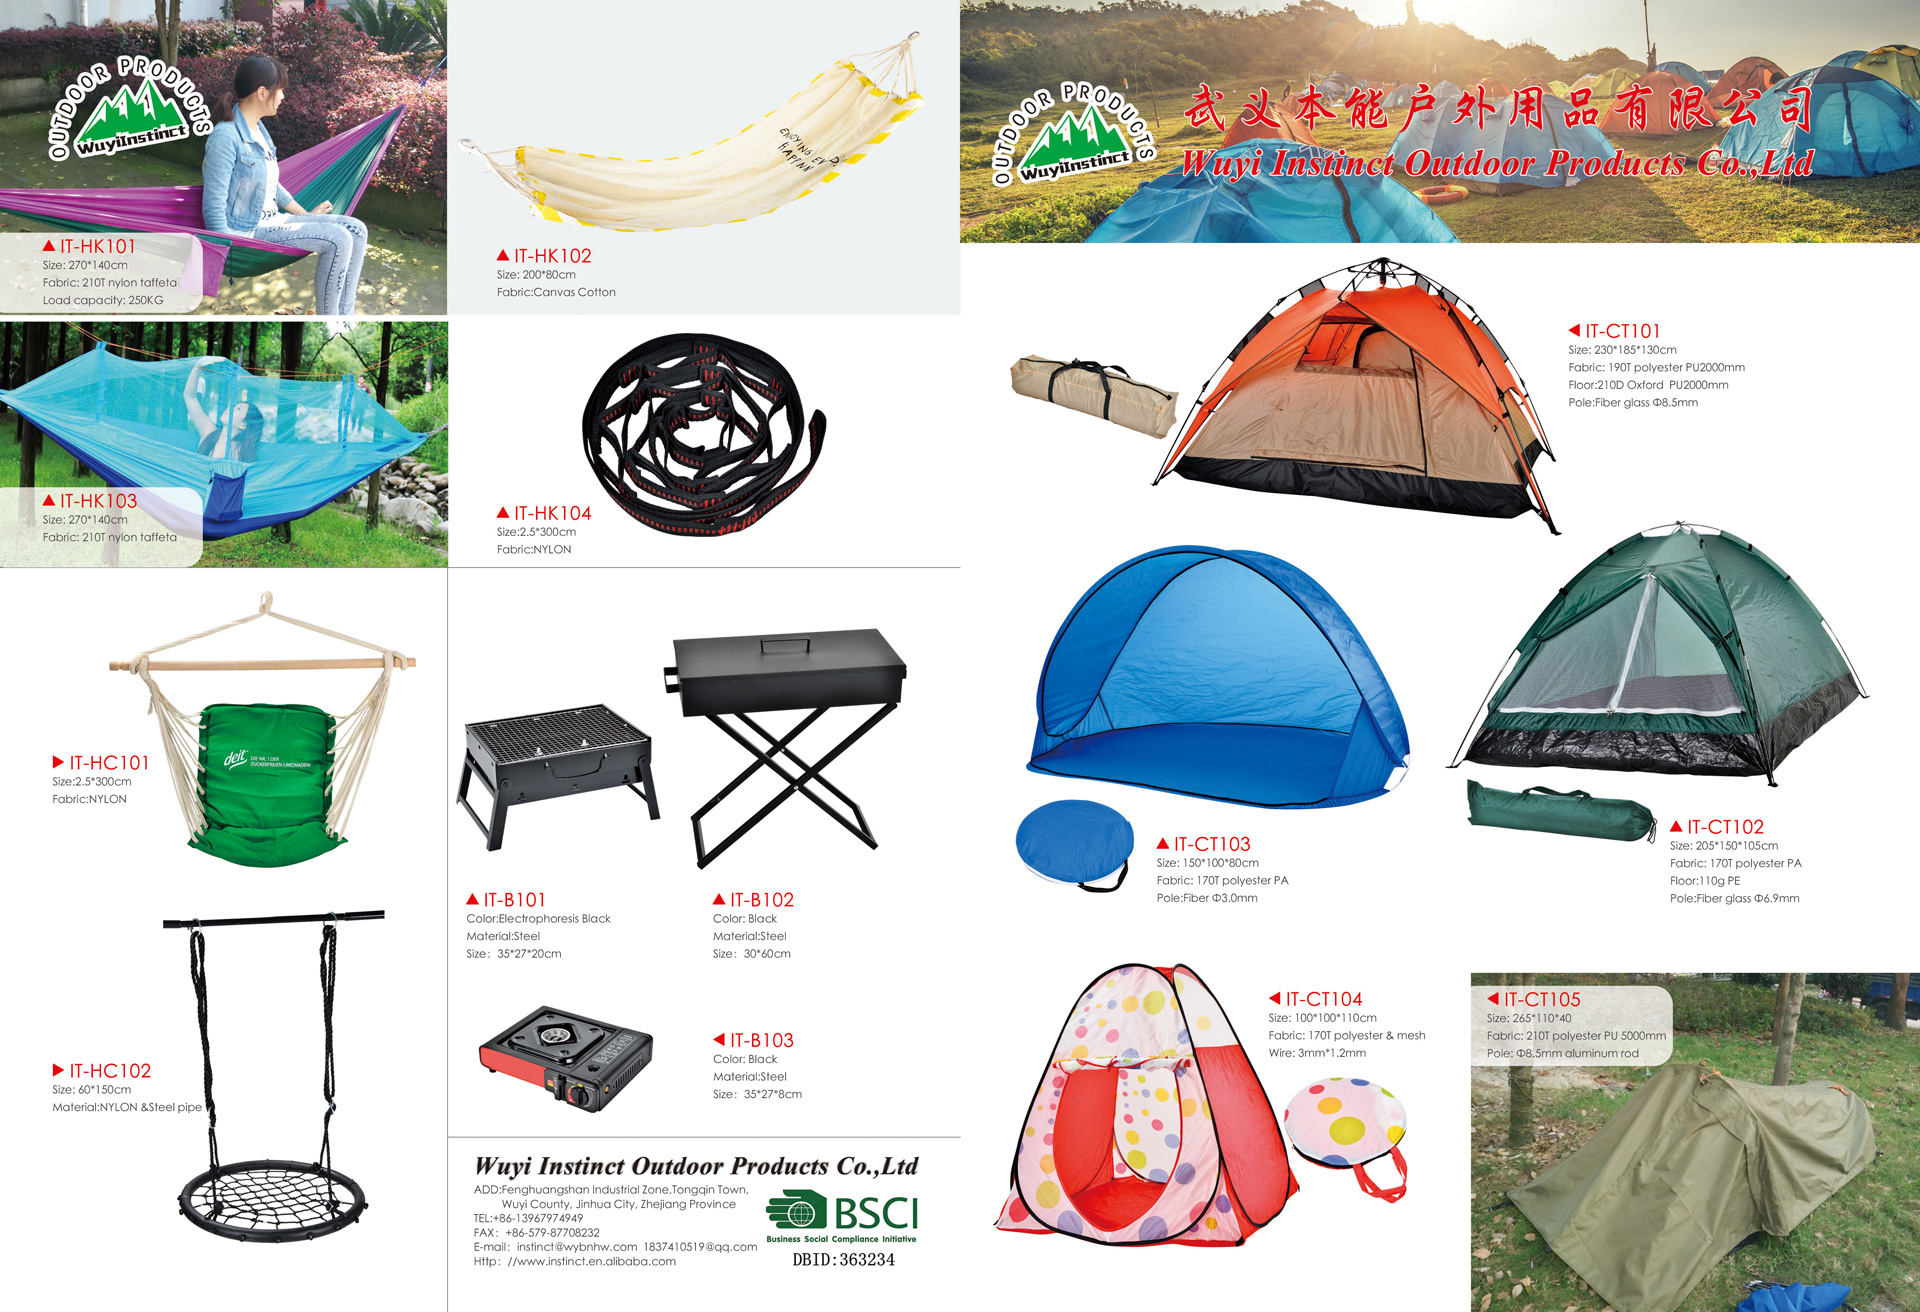 Wuyi Instinct Outdoor Products Co.,Ltd CATALOGUE